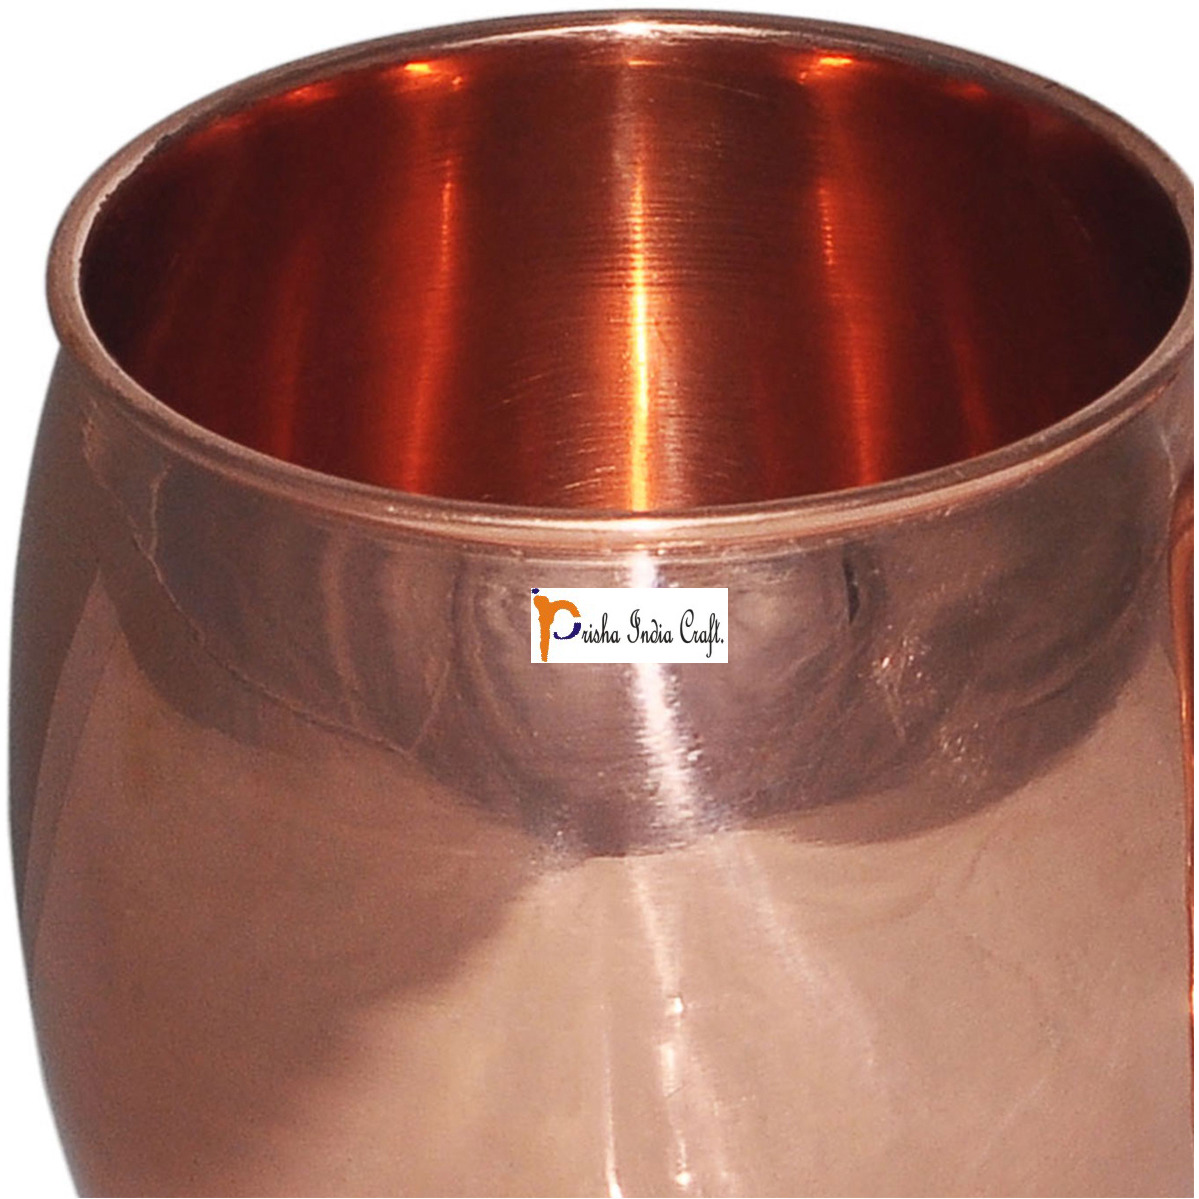 Set of 4 - Prisha India Craft B. Copper Barrel Mug Classic for Moscow Mule 520 ML / 17 oz Pure Copper Mug, Copper Mule Cup, Moscow Mule Cocktail Cup, Copper Mugs, Cocktail Mugs - with No Inner Linings